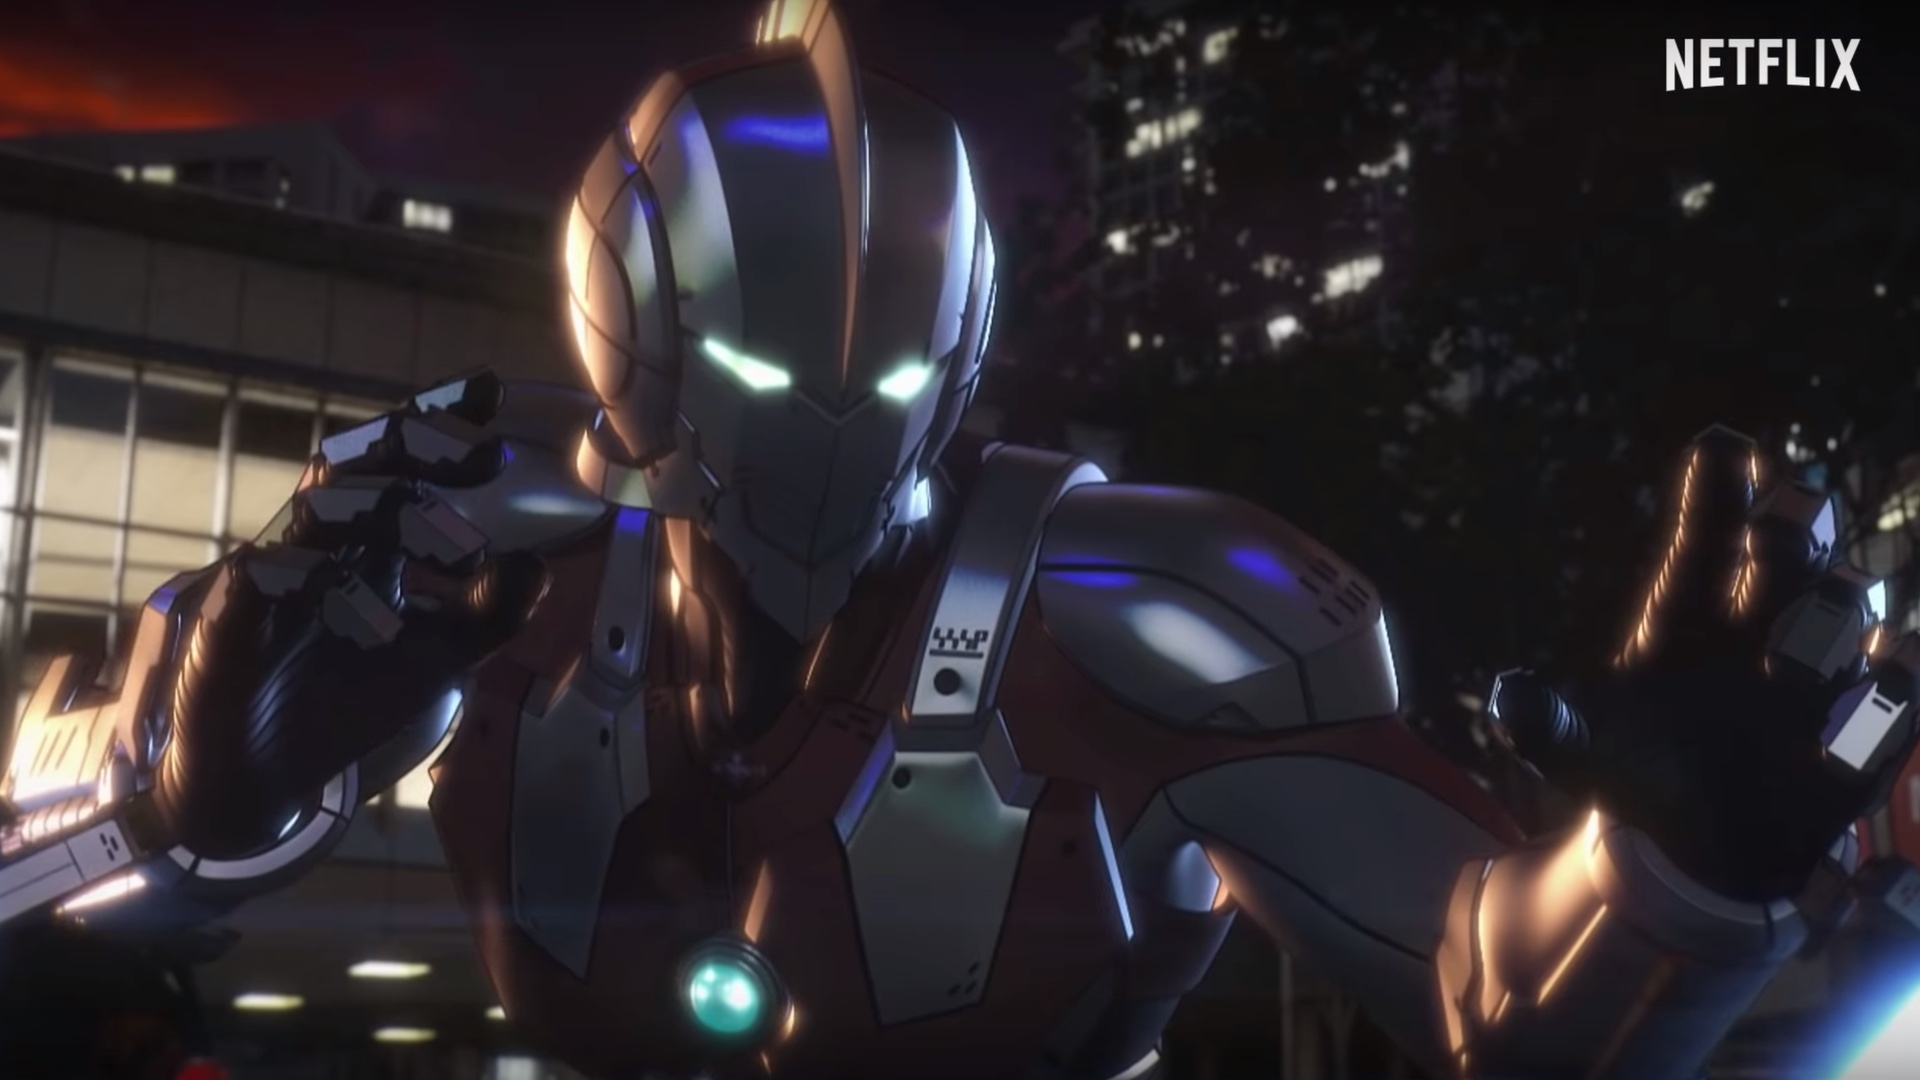 Ultraman season 1 review netflix anime series ready steady cut